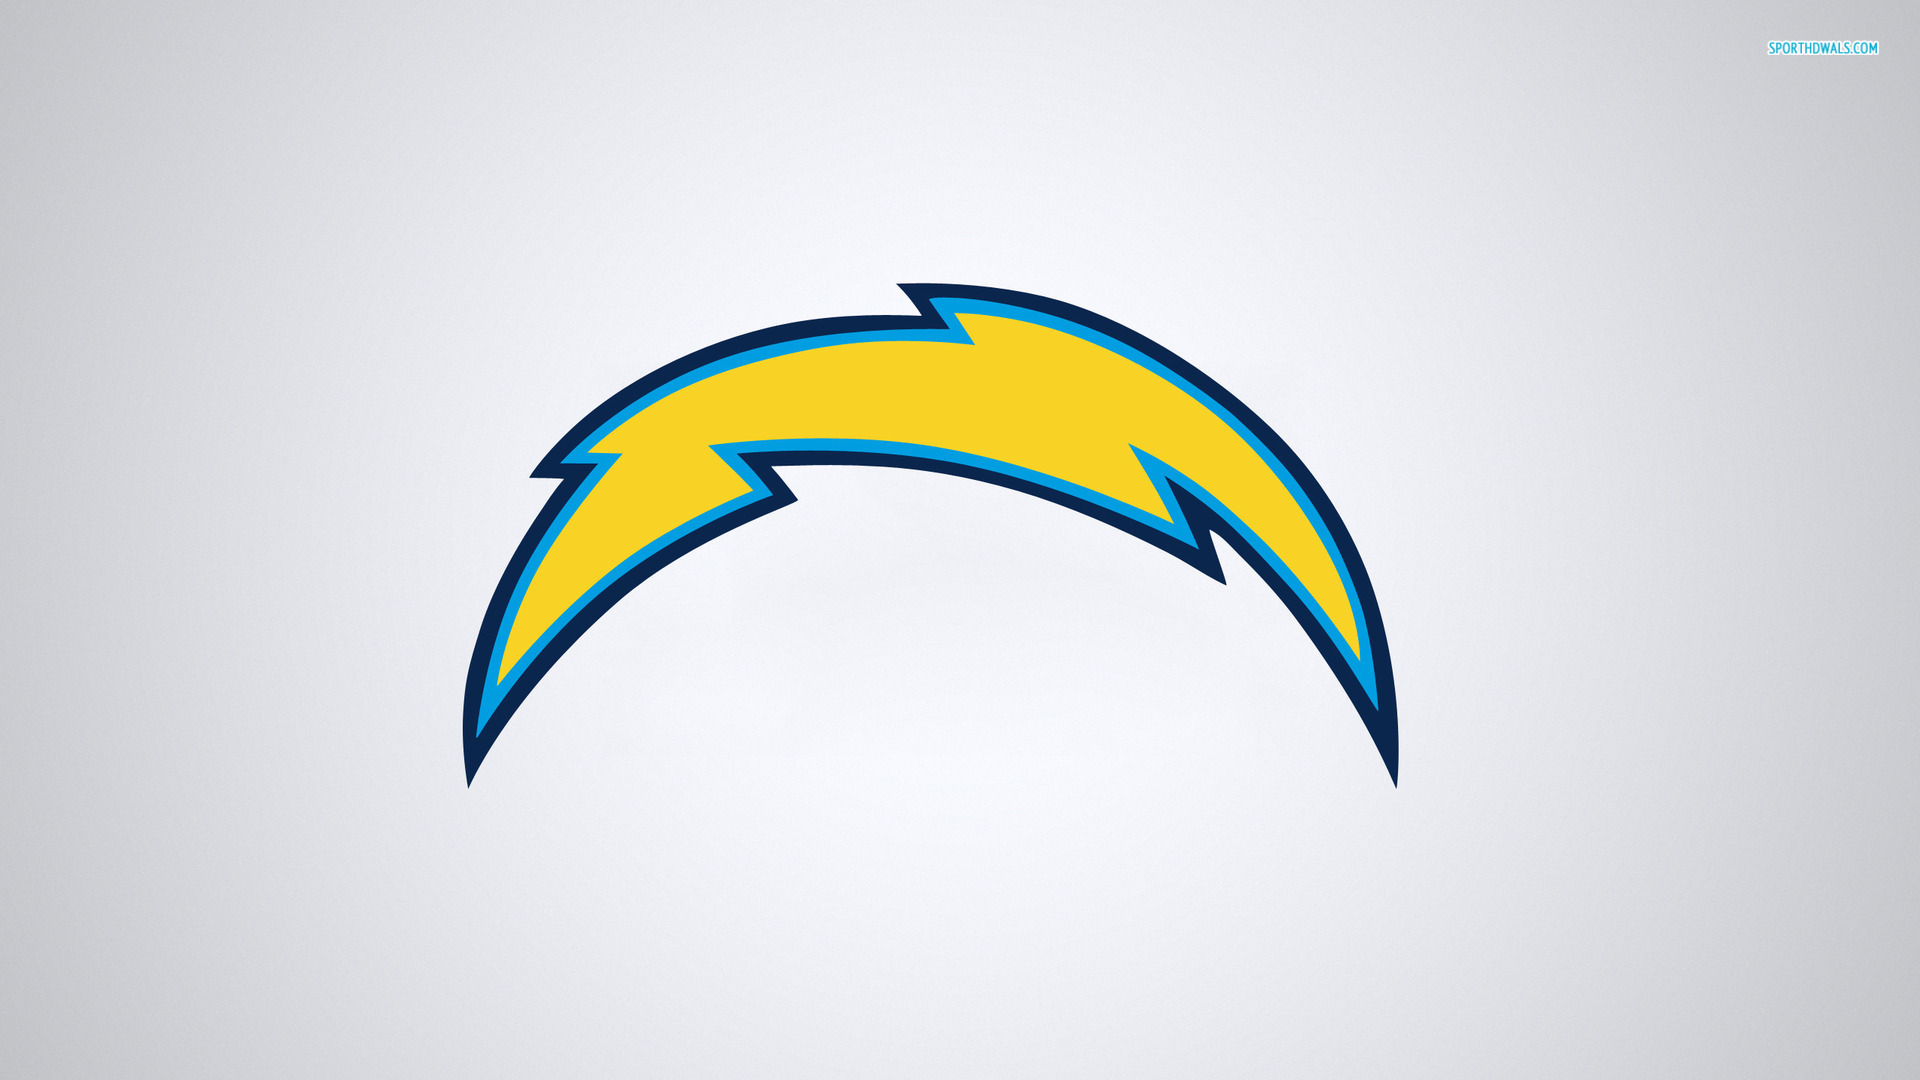 San Diego Chargers Nfl Football Jh Wallpaper 1920x1080